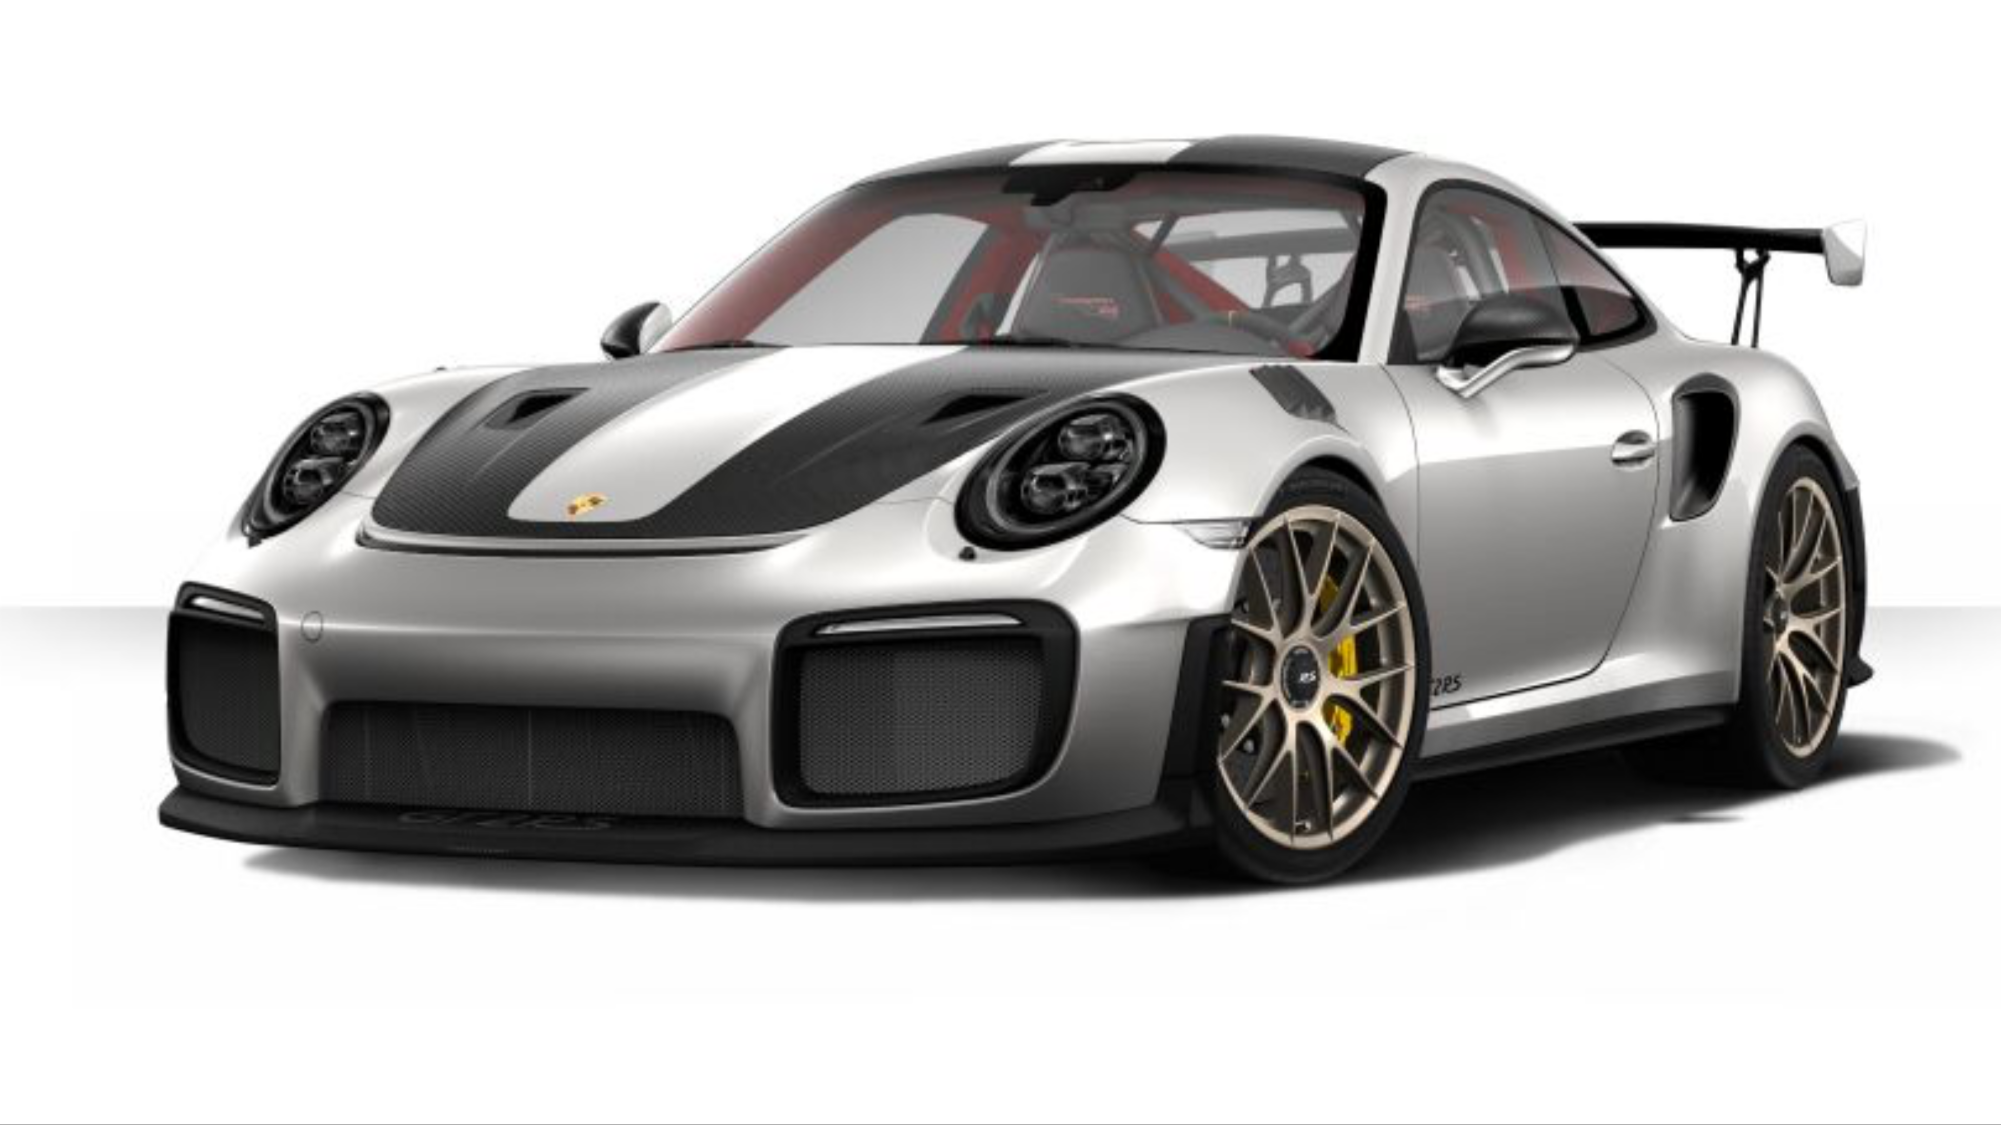 c4263799e748b1a1dc5662bdbeab7fe1 Interesting Porsche 911 Gt2 and Gt3 Cars Trend